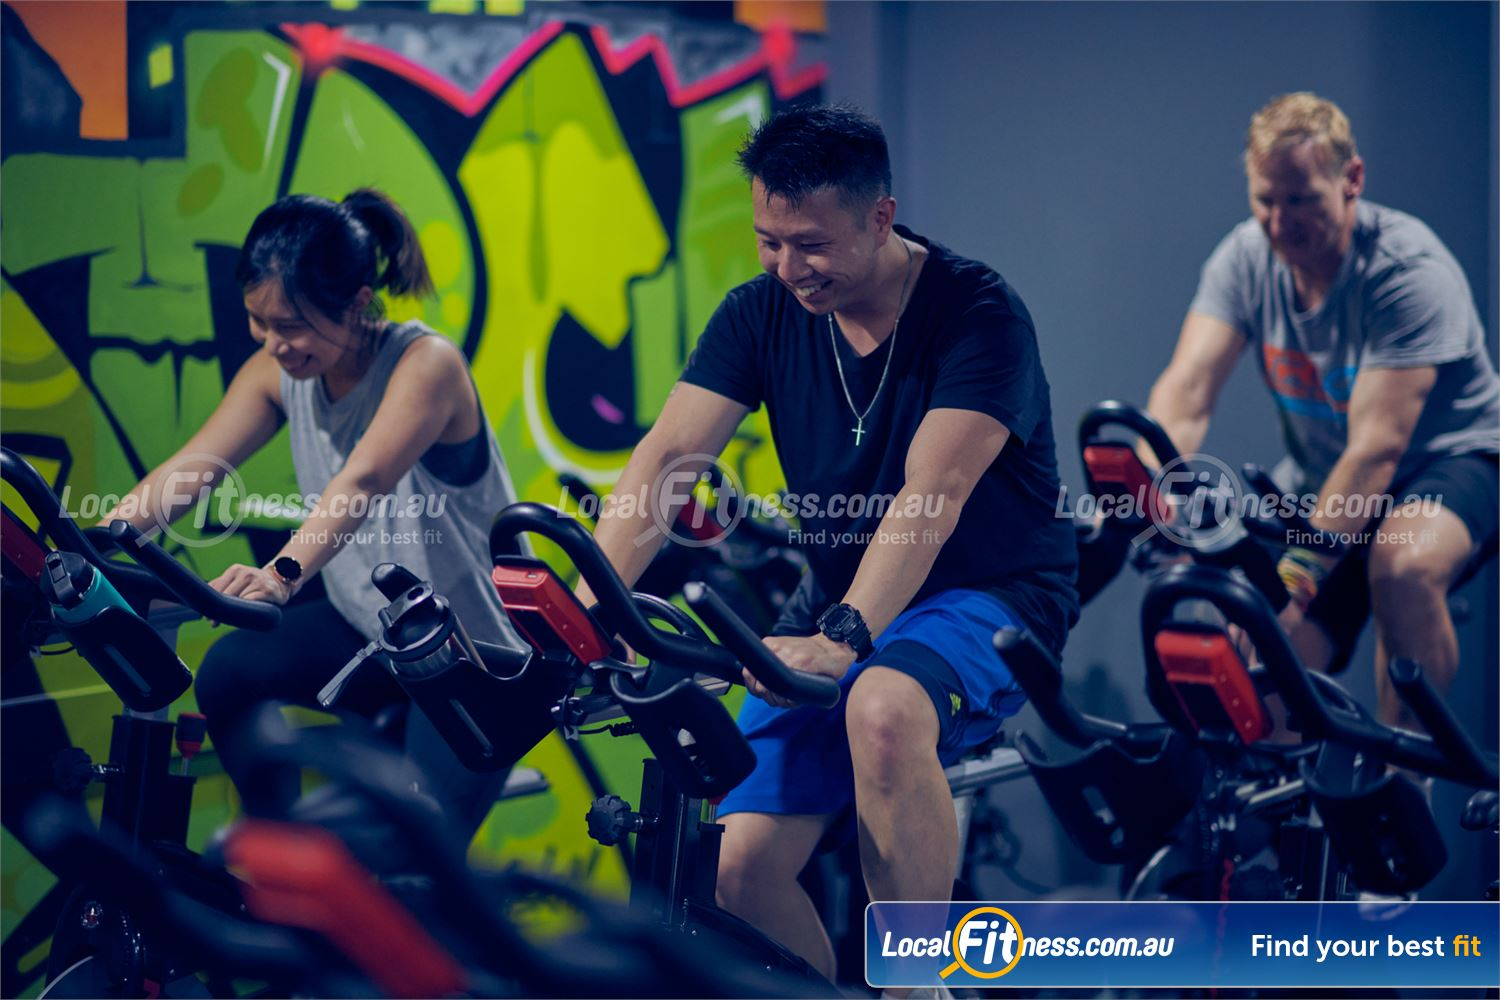 Knox Leisureworks Near Ferny Creek Our spin instructors will take you on a high-energy cycle workout in Knox.